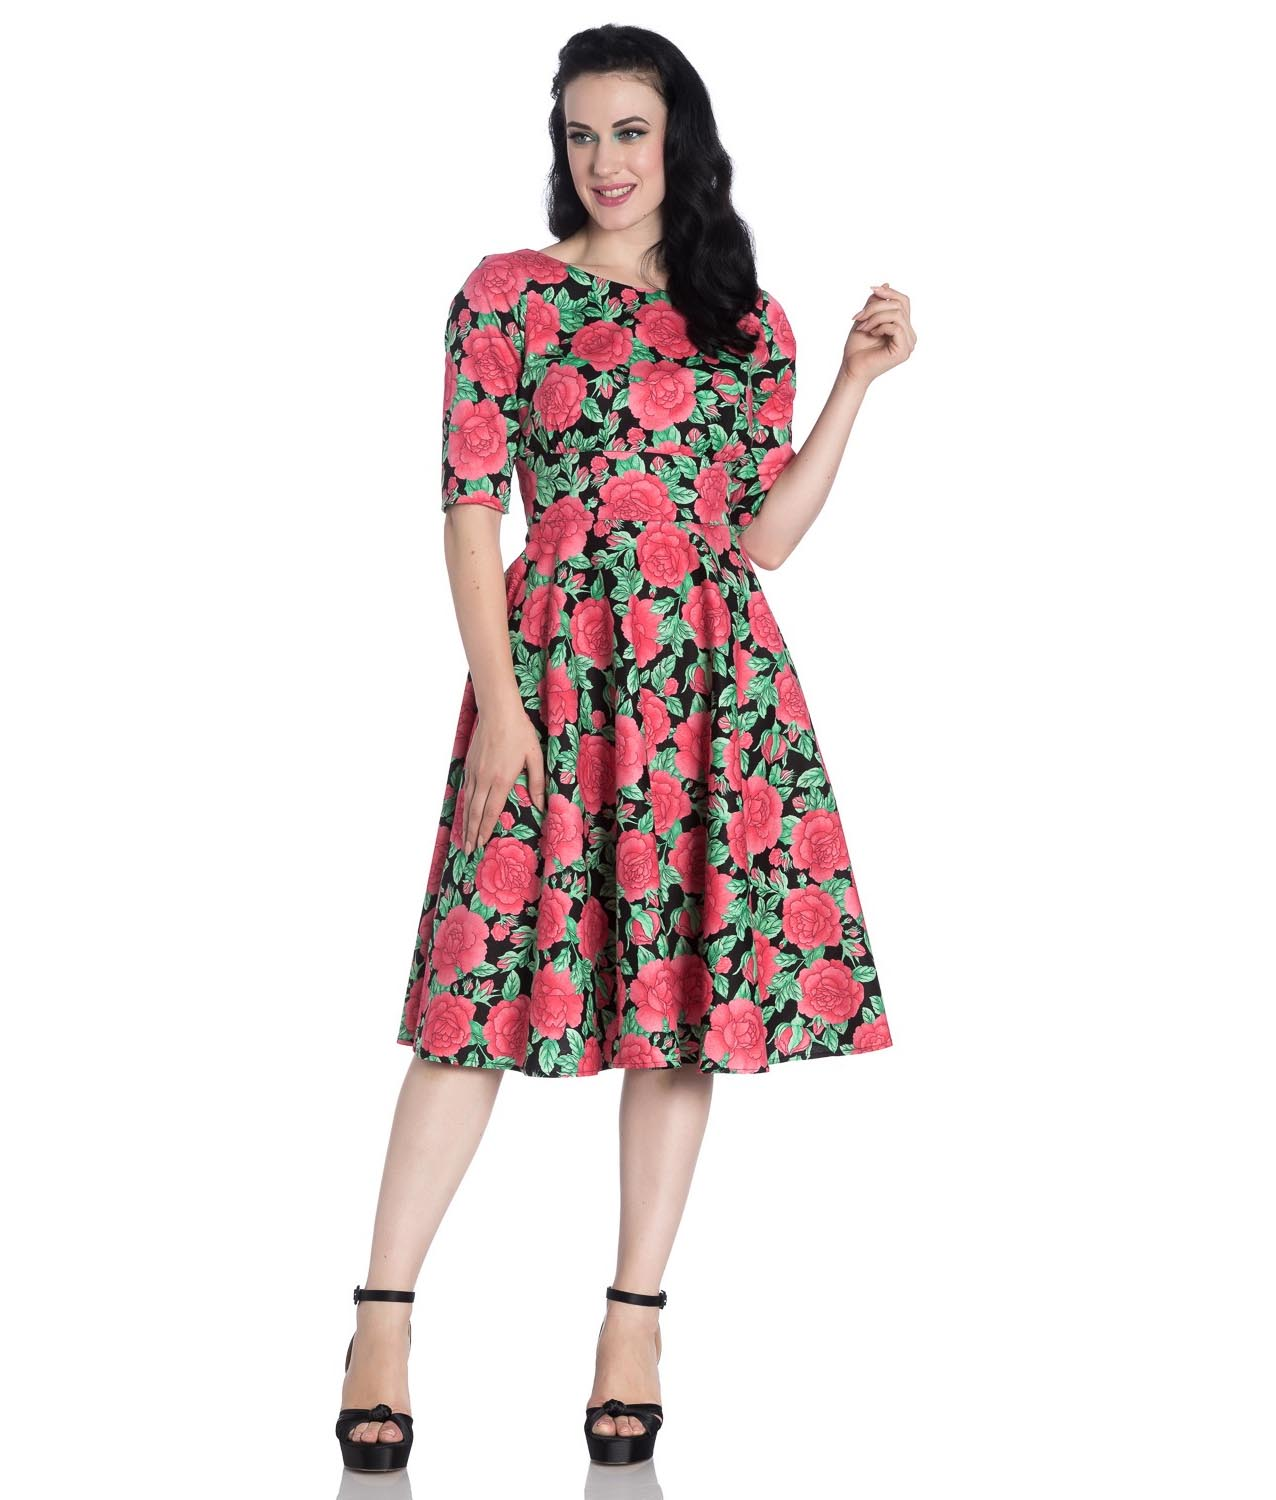 Hell-Bunny-40s-50s-Black-Pin-Up-Vintage-Dress-DARCY-Pink-Roses-All-Sizes thumbnail 3